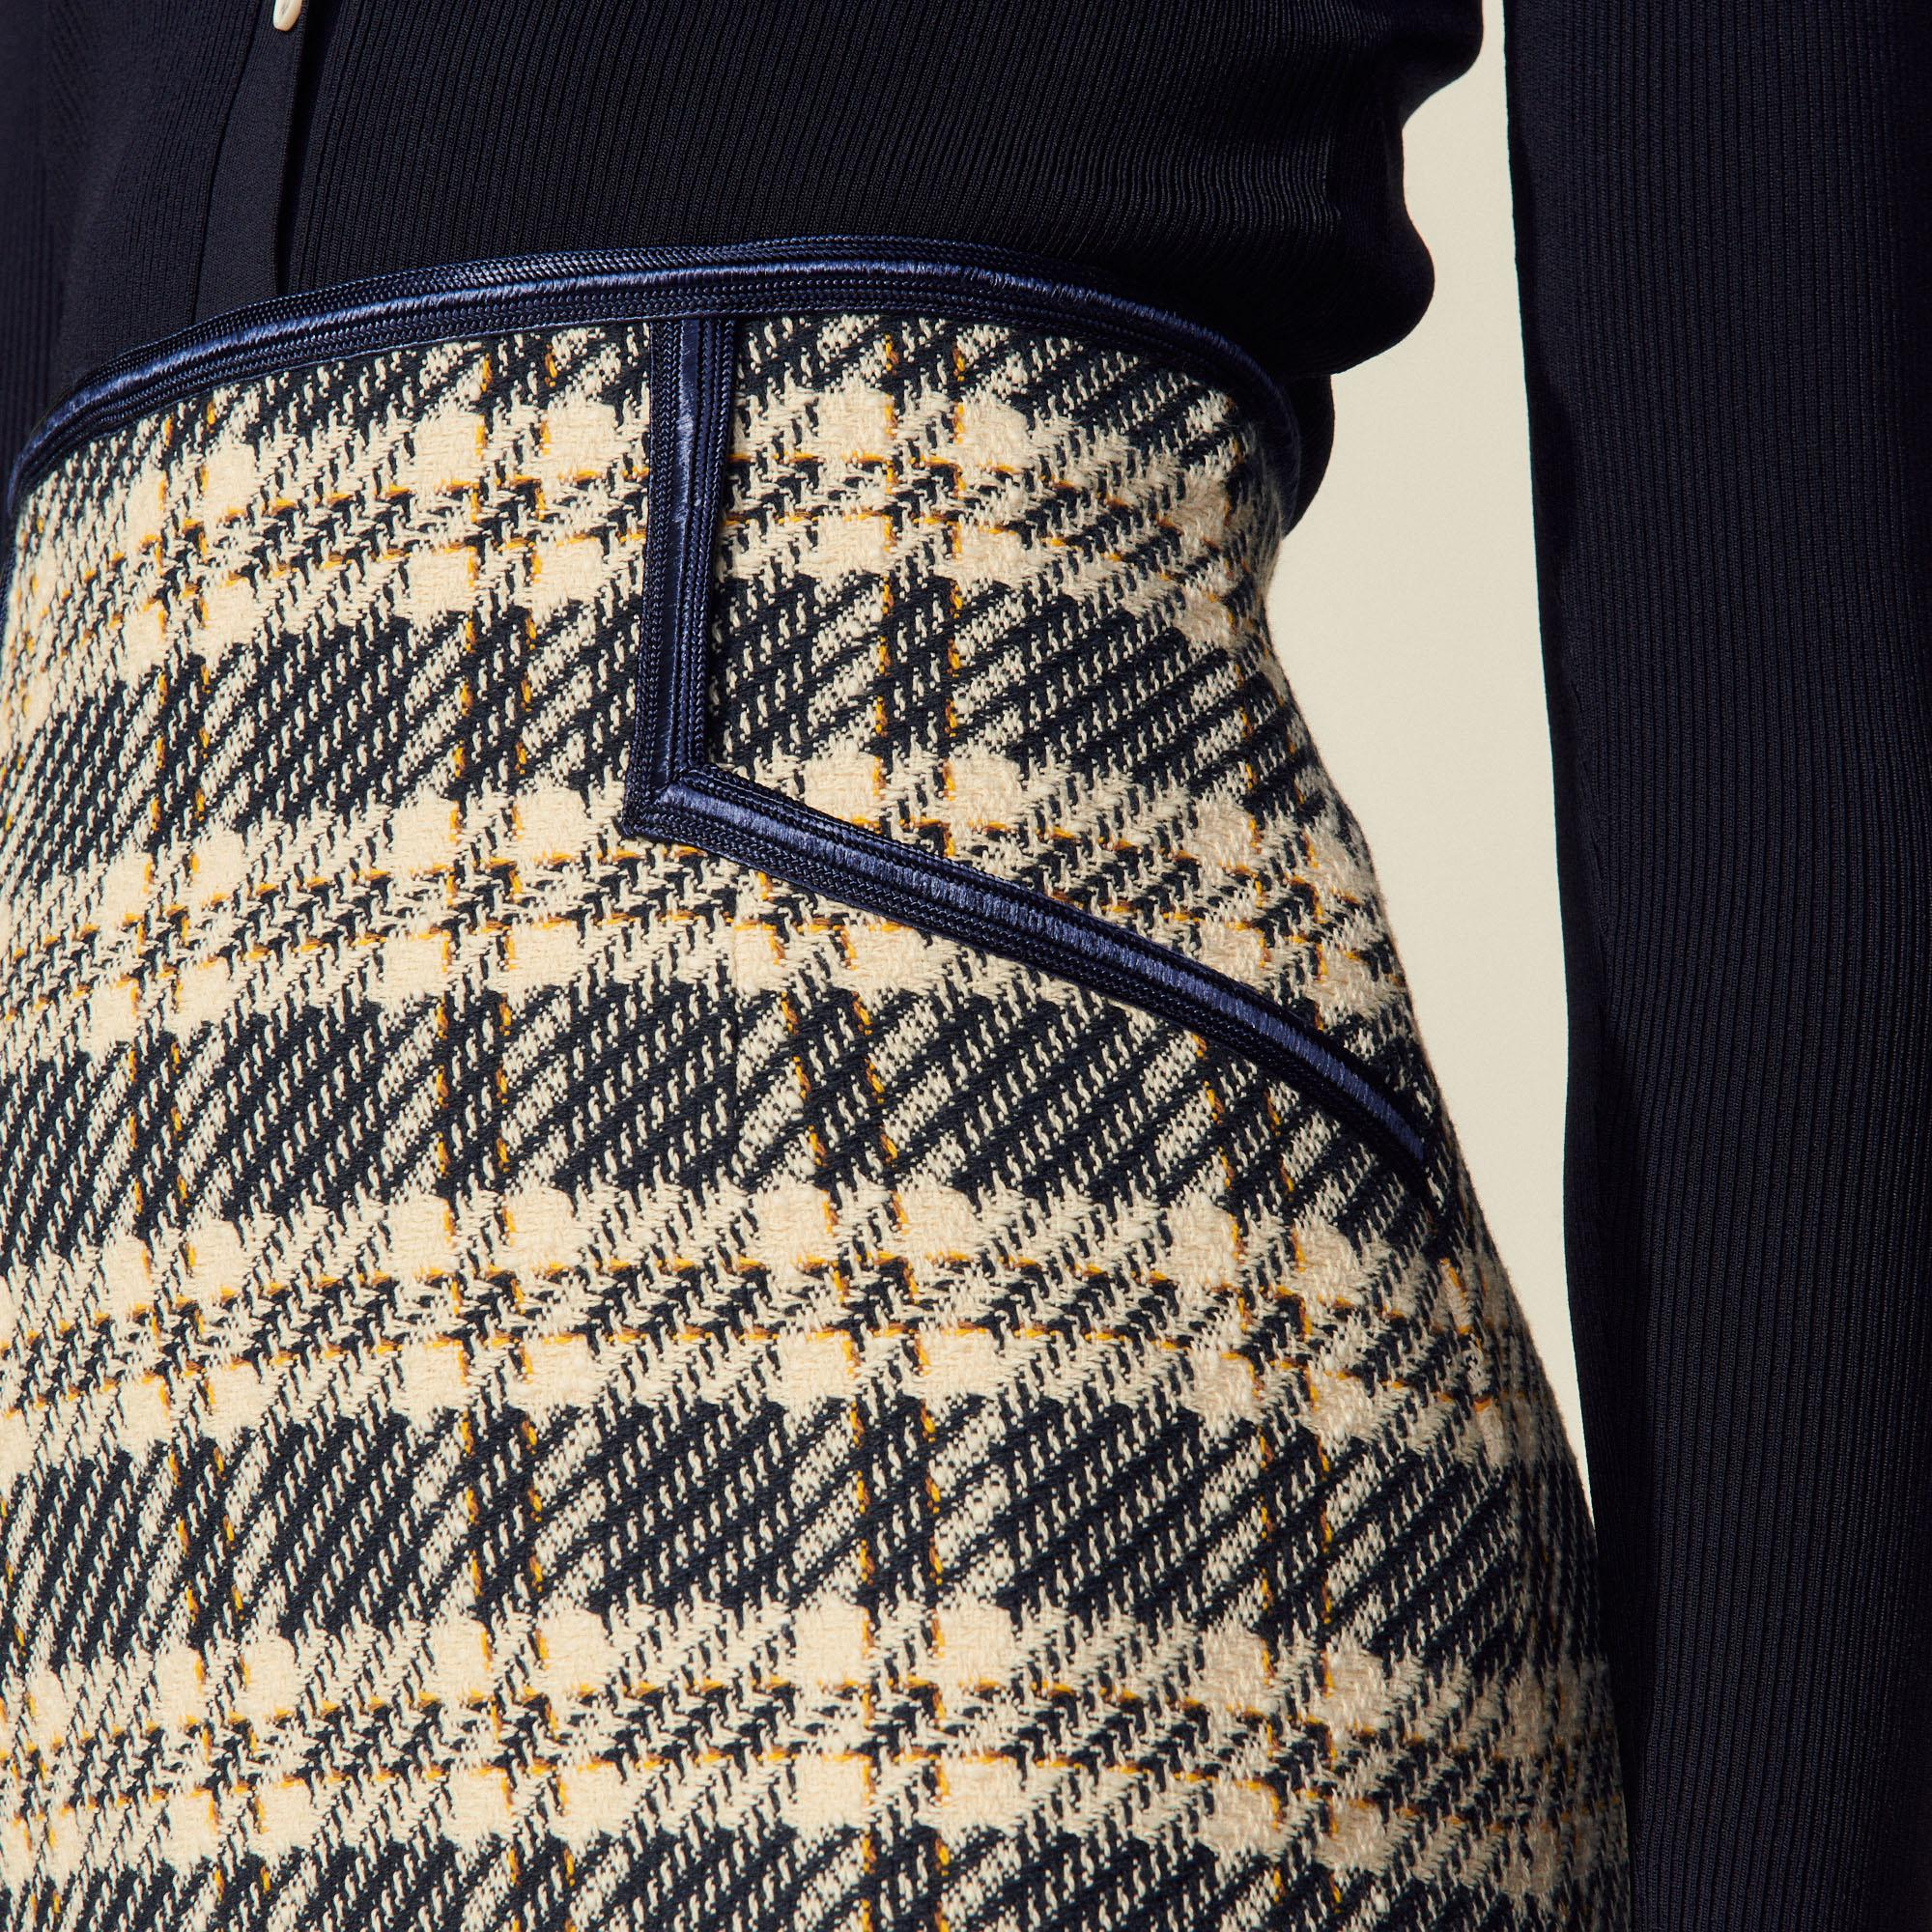 Checked tweed skirt 4